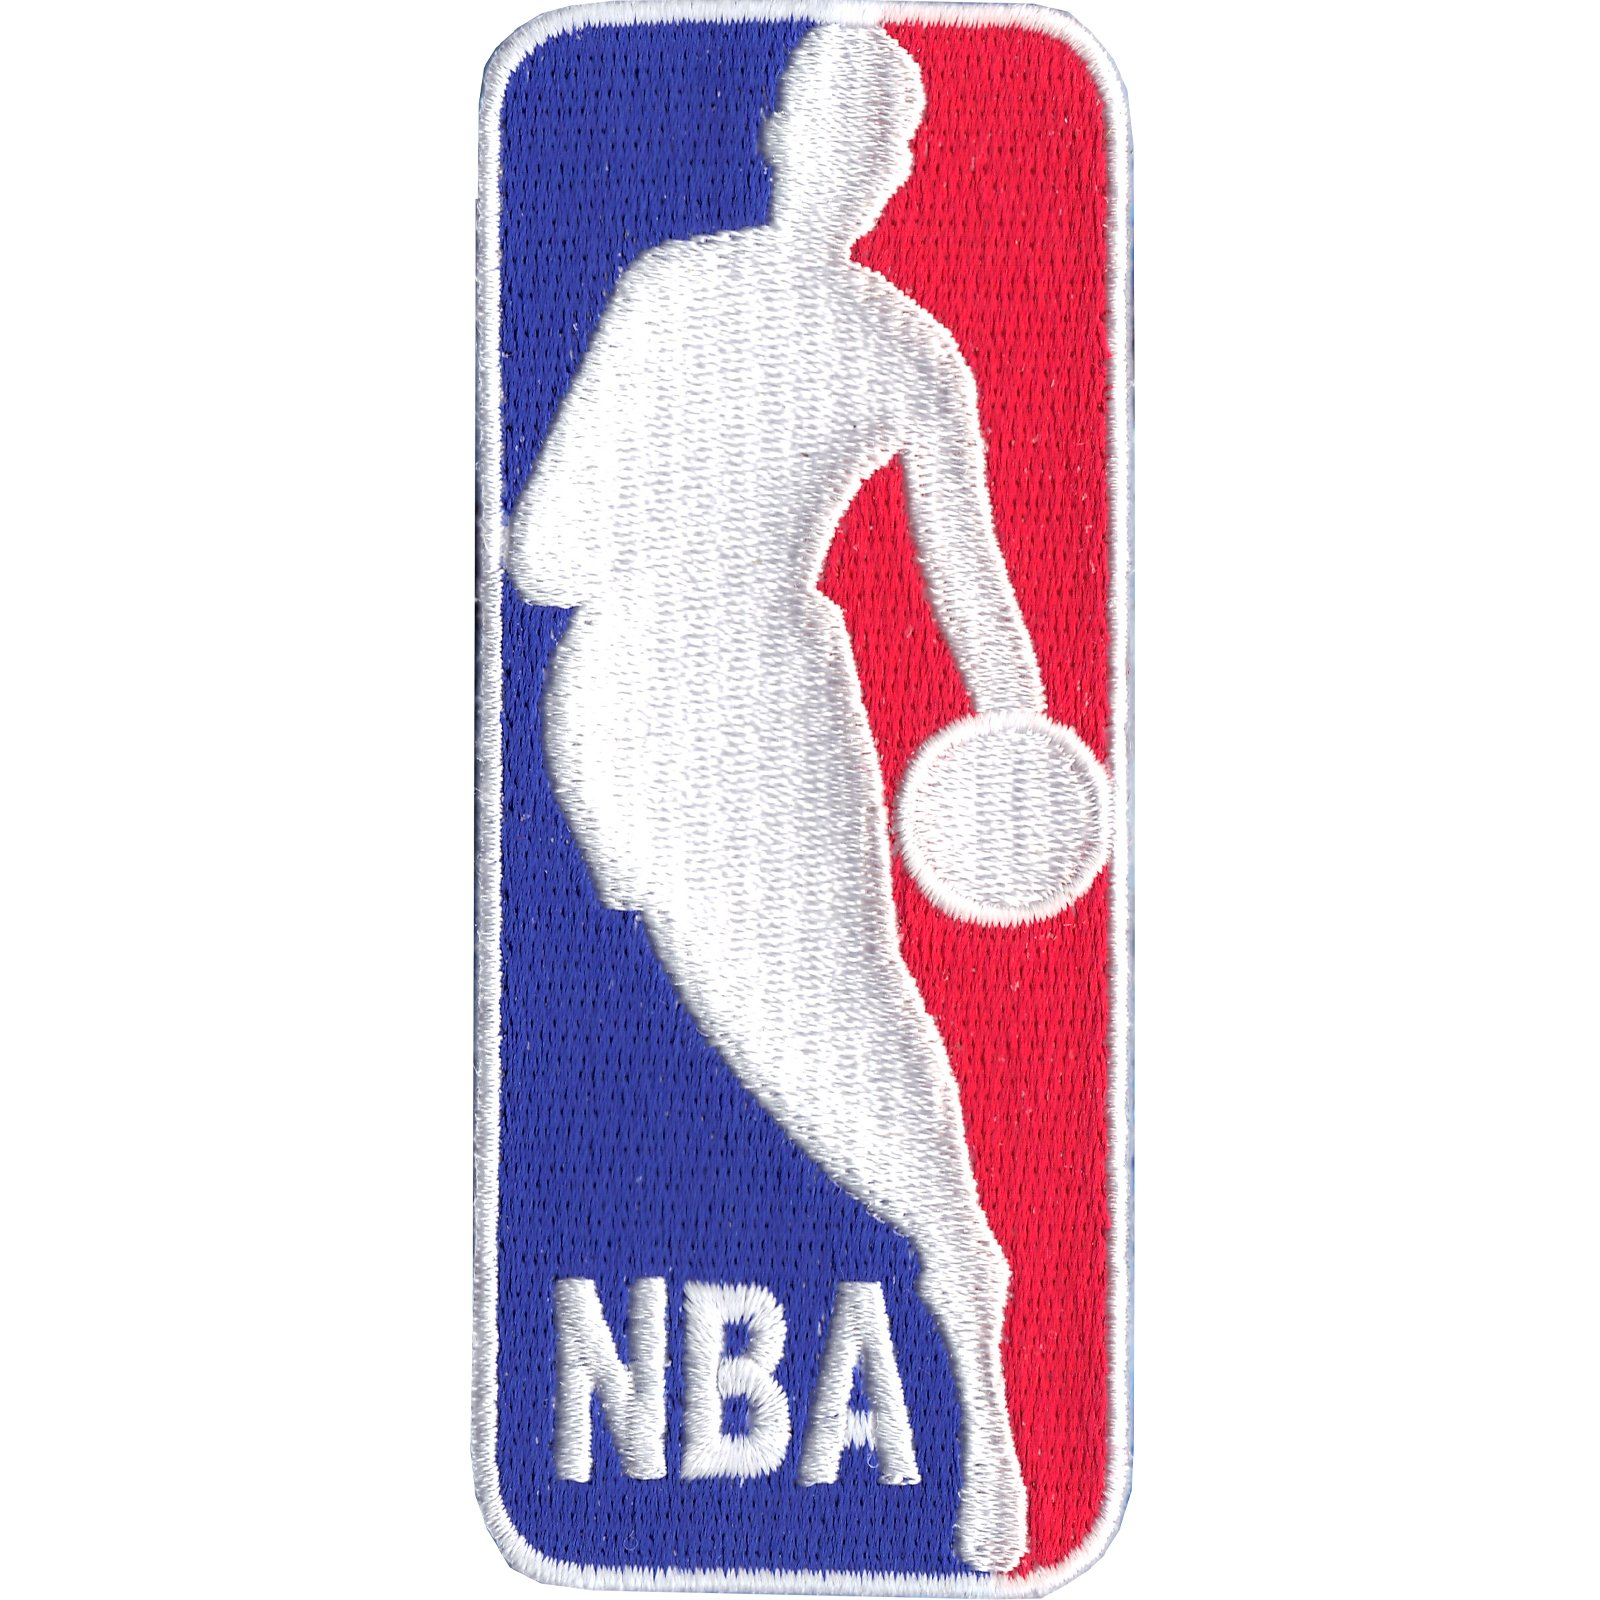 Official NBA Basketball League Large Logo 'Jerry West' Patch